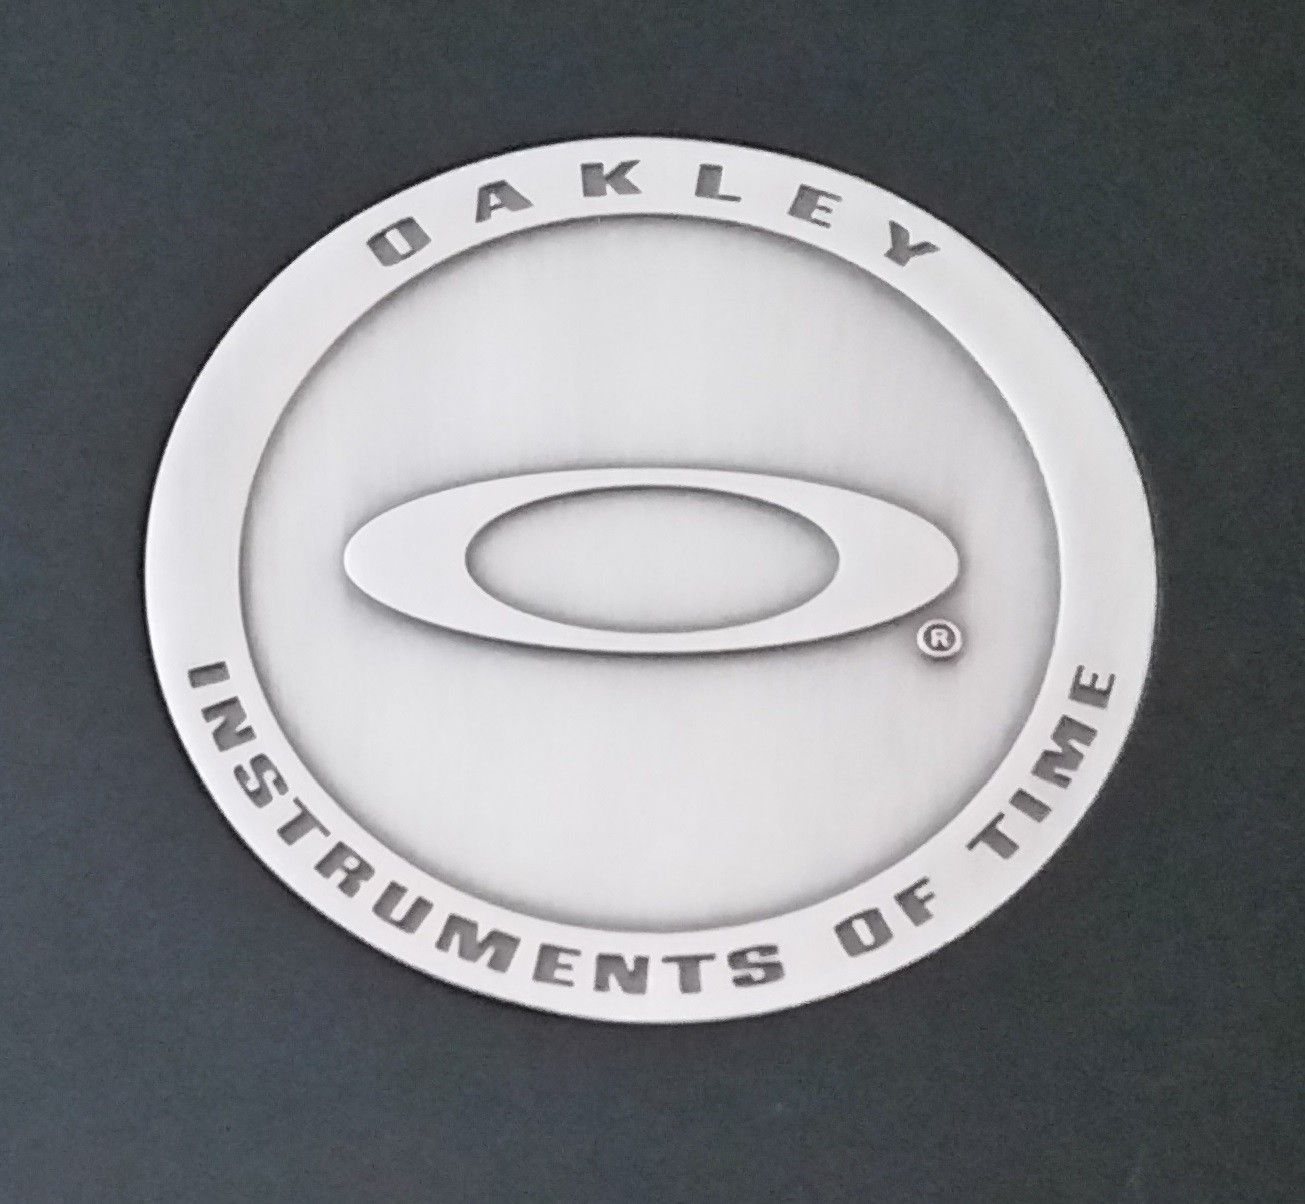 Oakley watch boxes - 20160426_183629.jpg